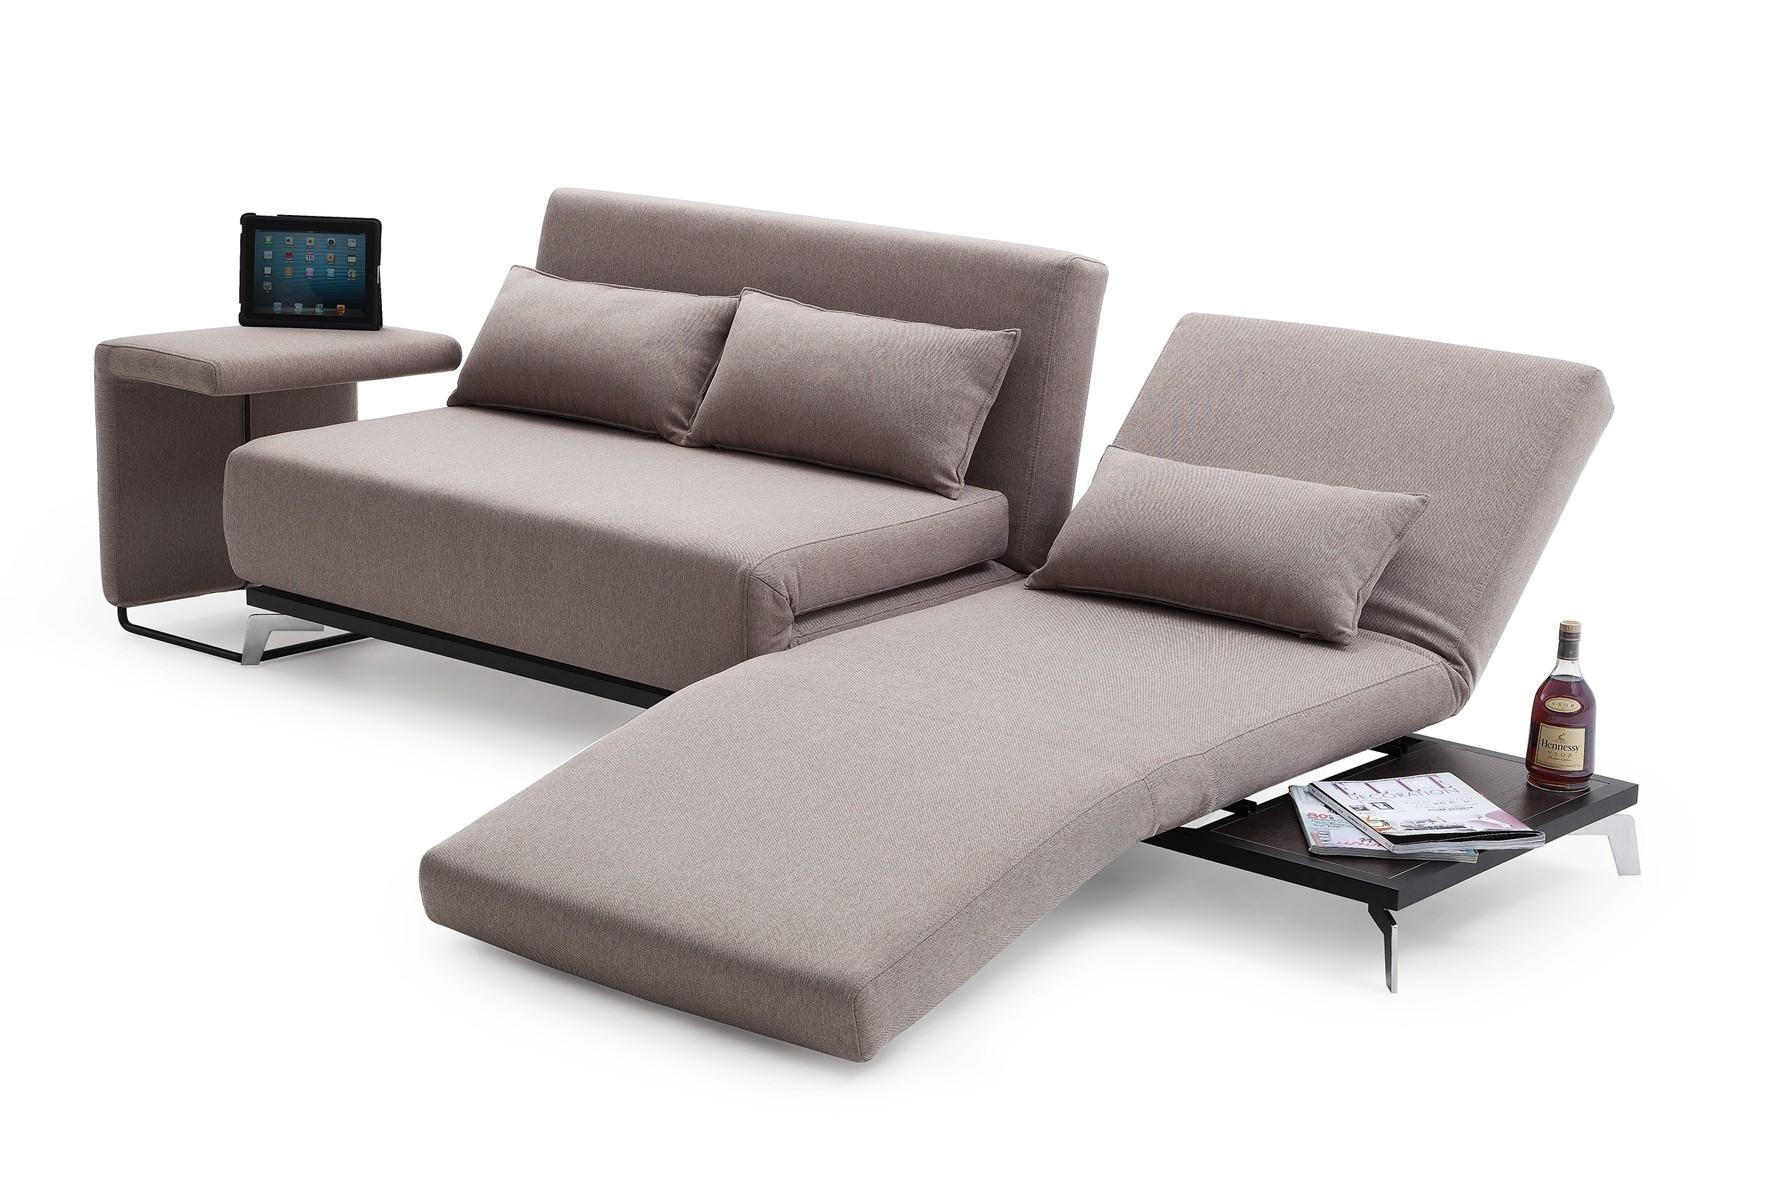 Jh033 Modern Sofa Bed In Modern Sofas (View 11 of 20)